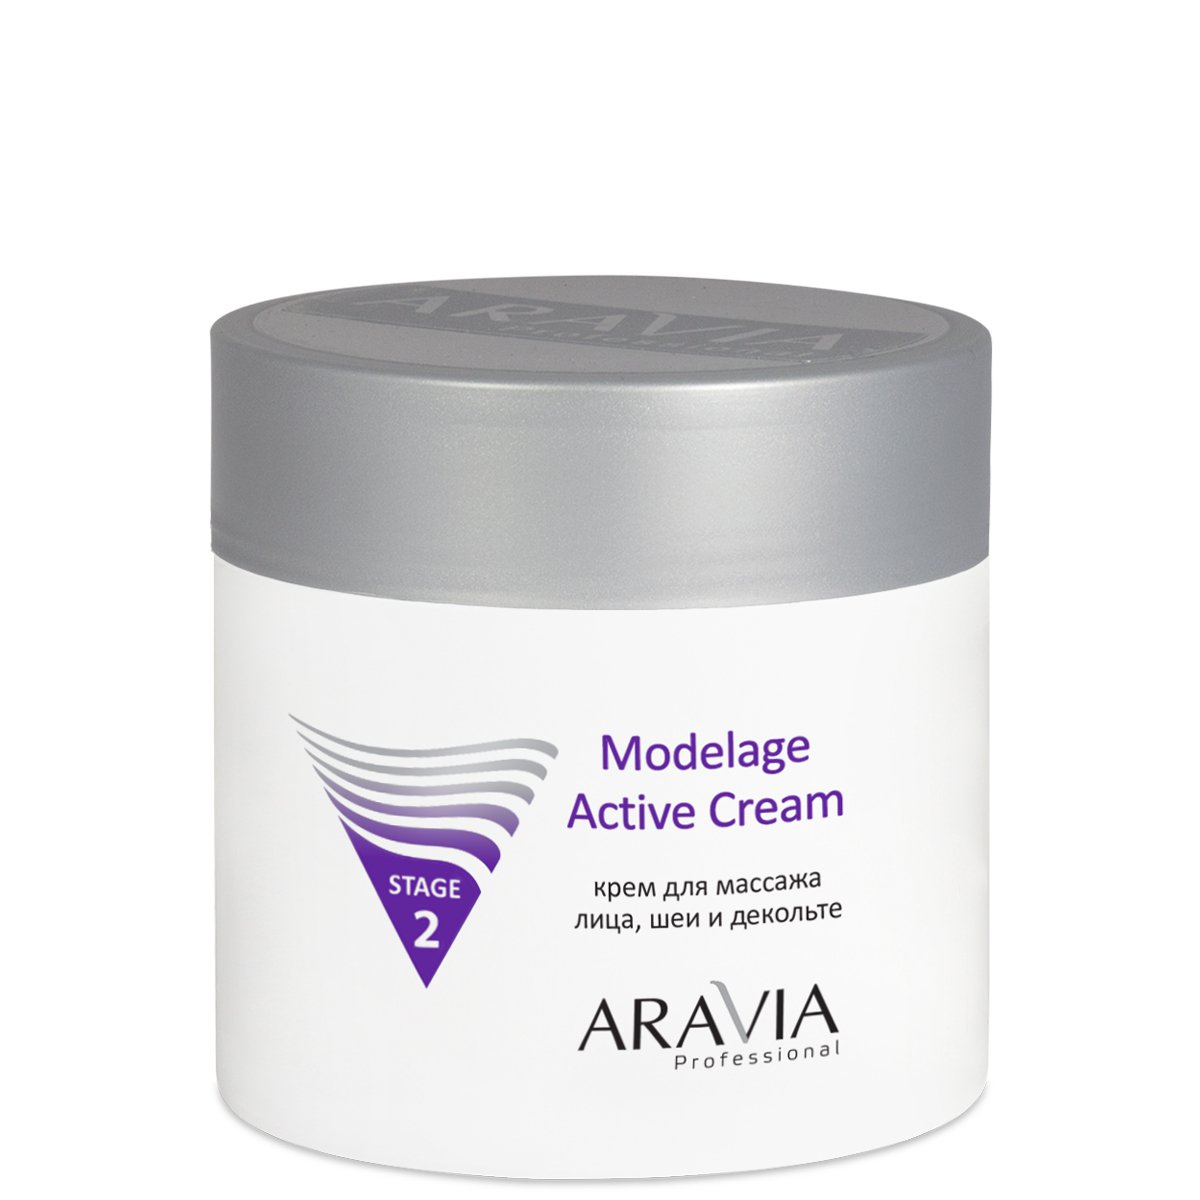 Aravia Modelage Active Cream Крем для массажа (300 ml) 6006